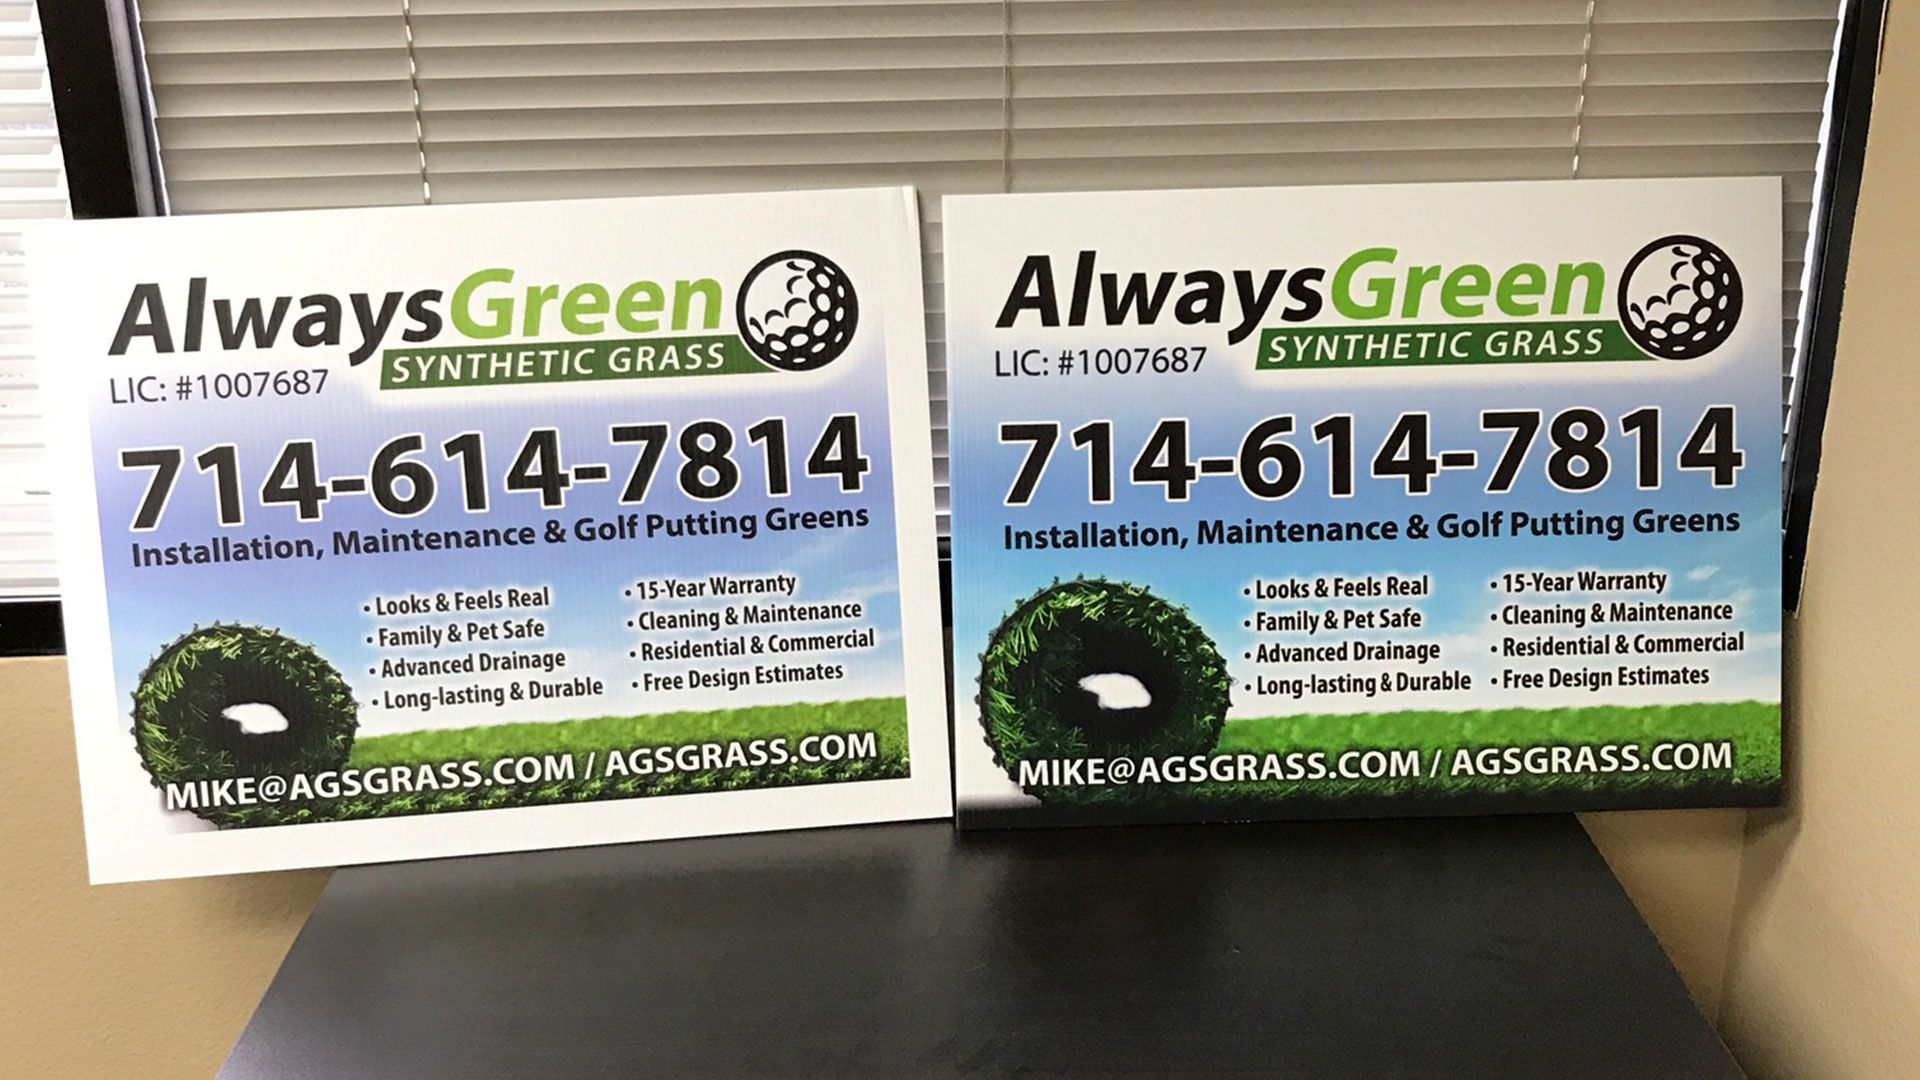 Always-Green-Synthetic-Grass-Yard-Signs.jpg